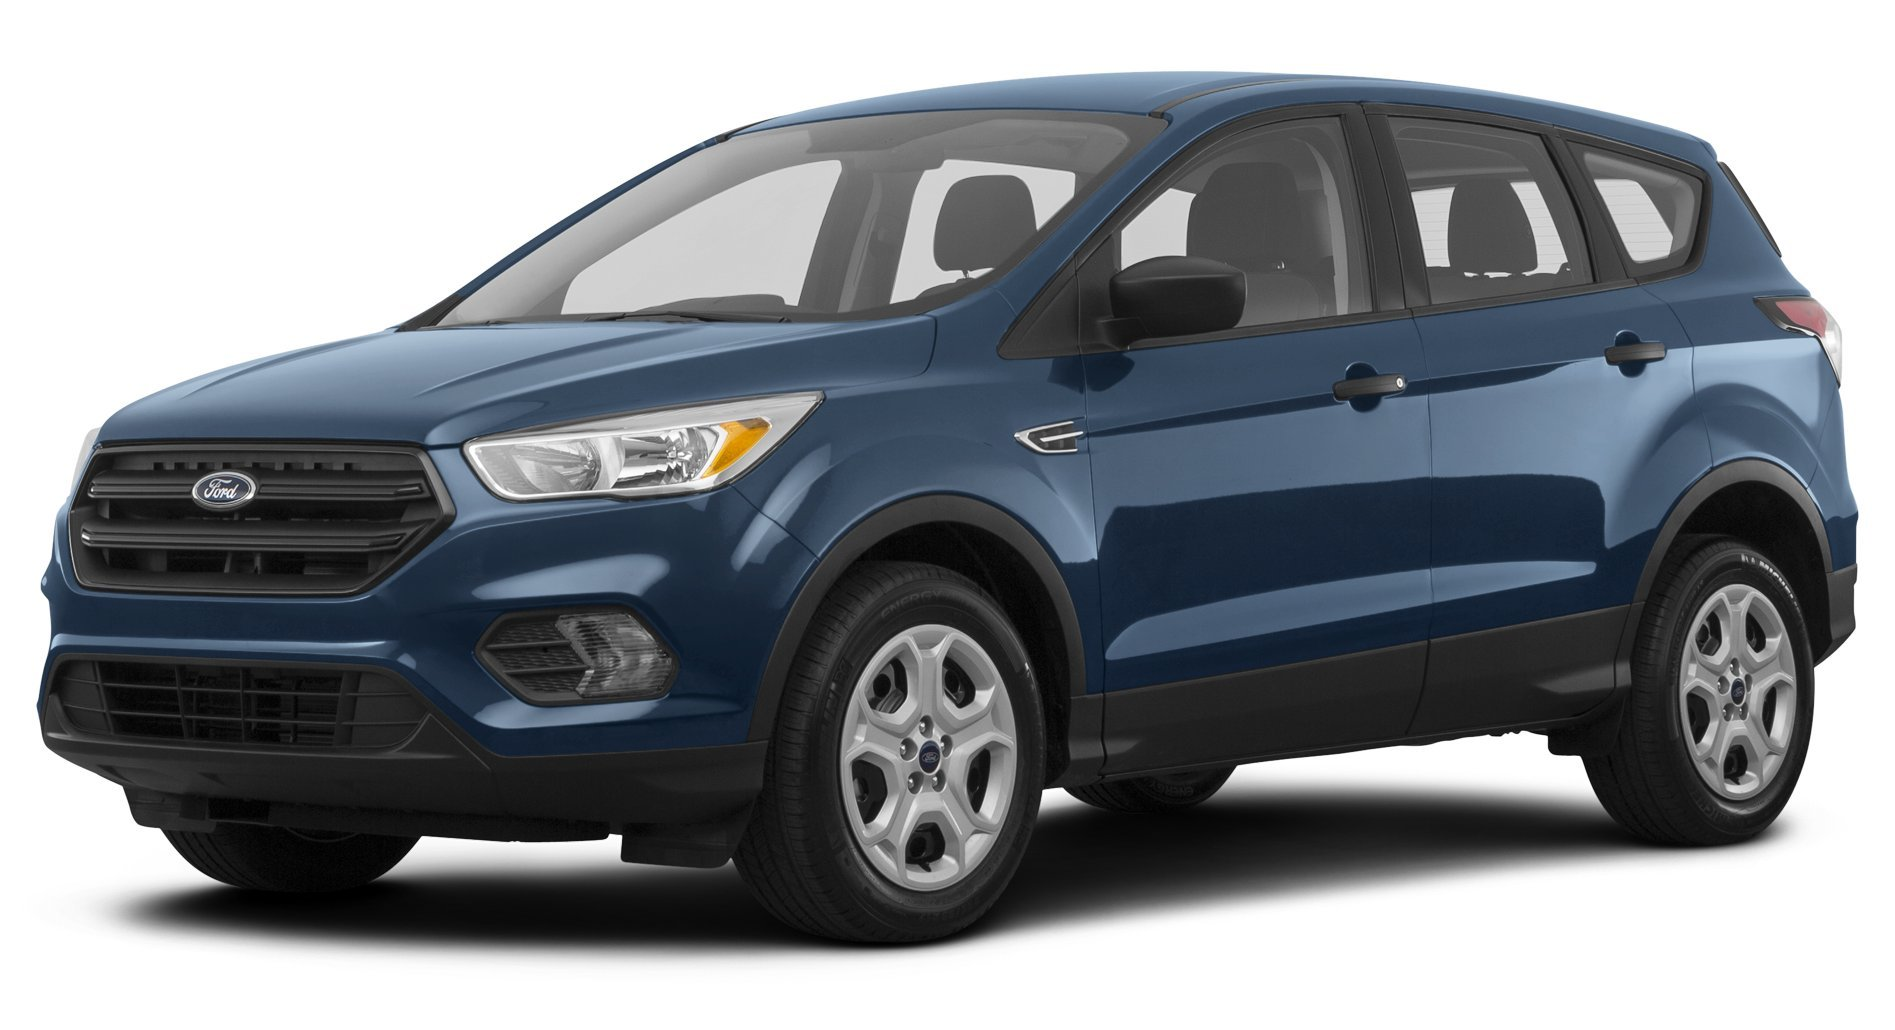 Amazon 2018 Ford Escape Reviews and Specs Vehicles